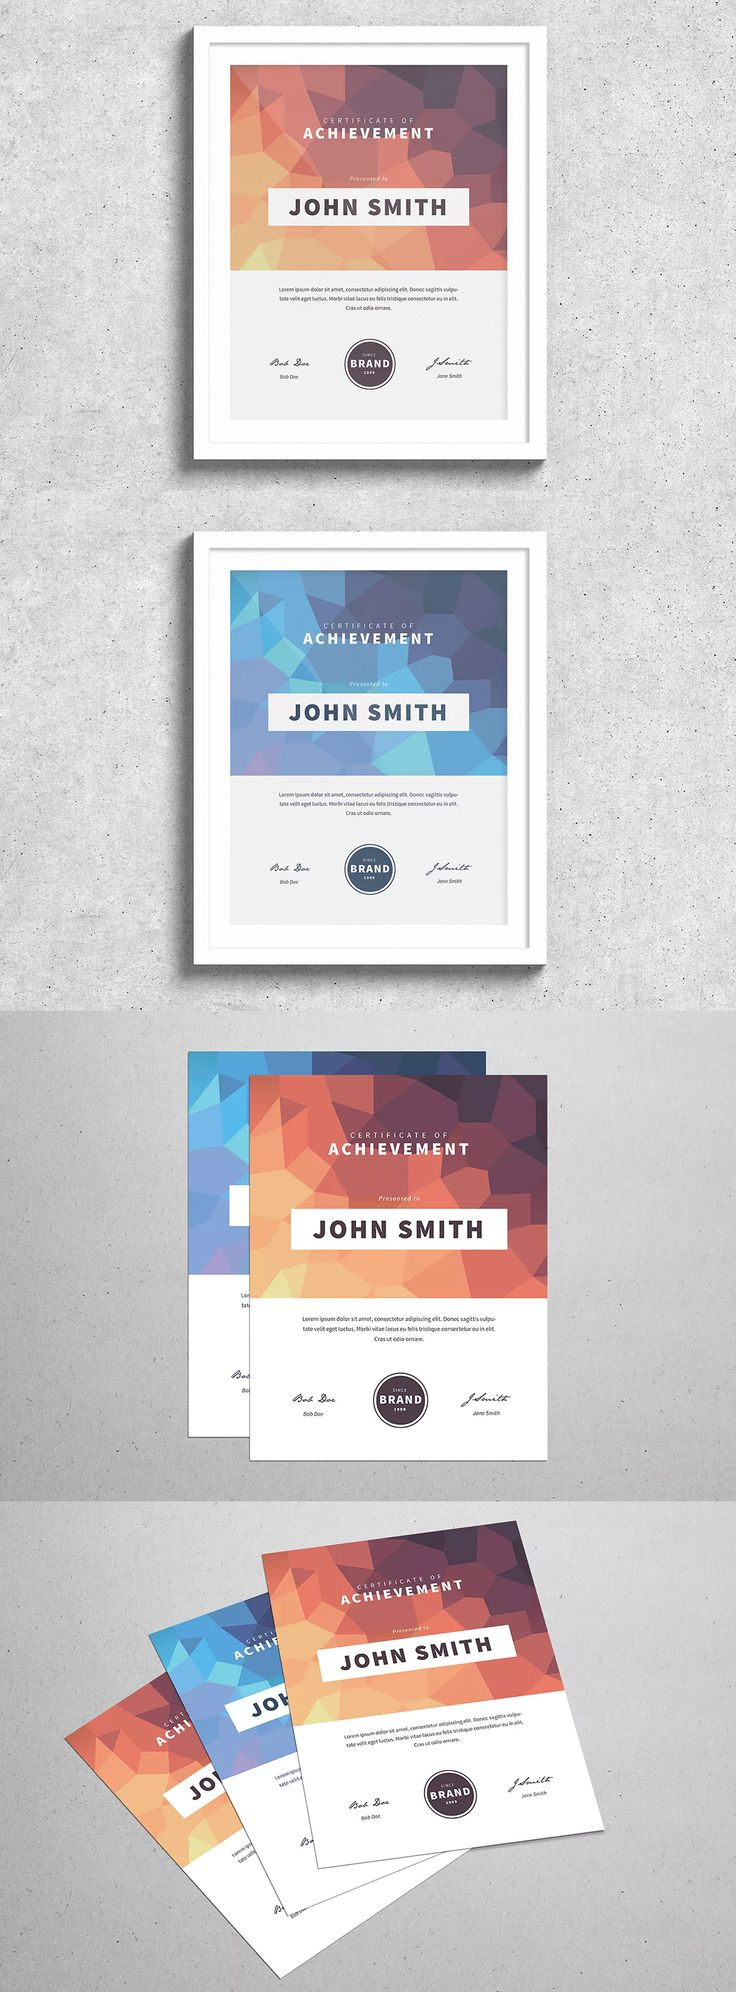 46 best certificate templates images on pinterest certificate modern certificate template ai psd yelopaper Gallery